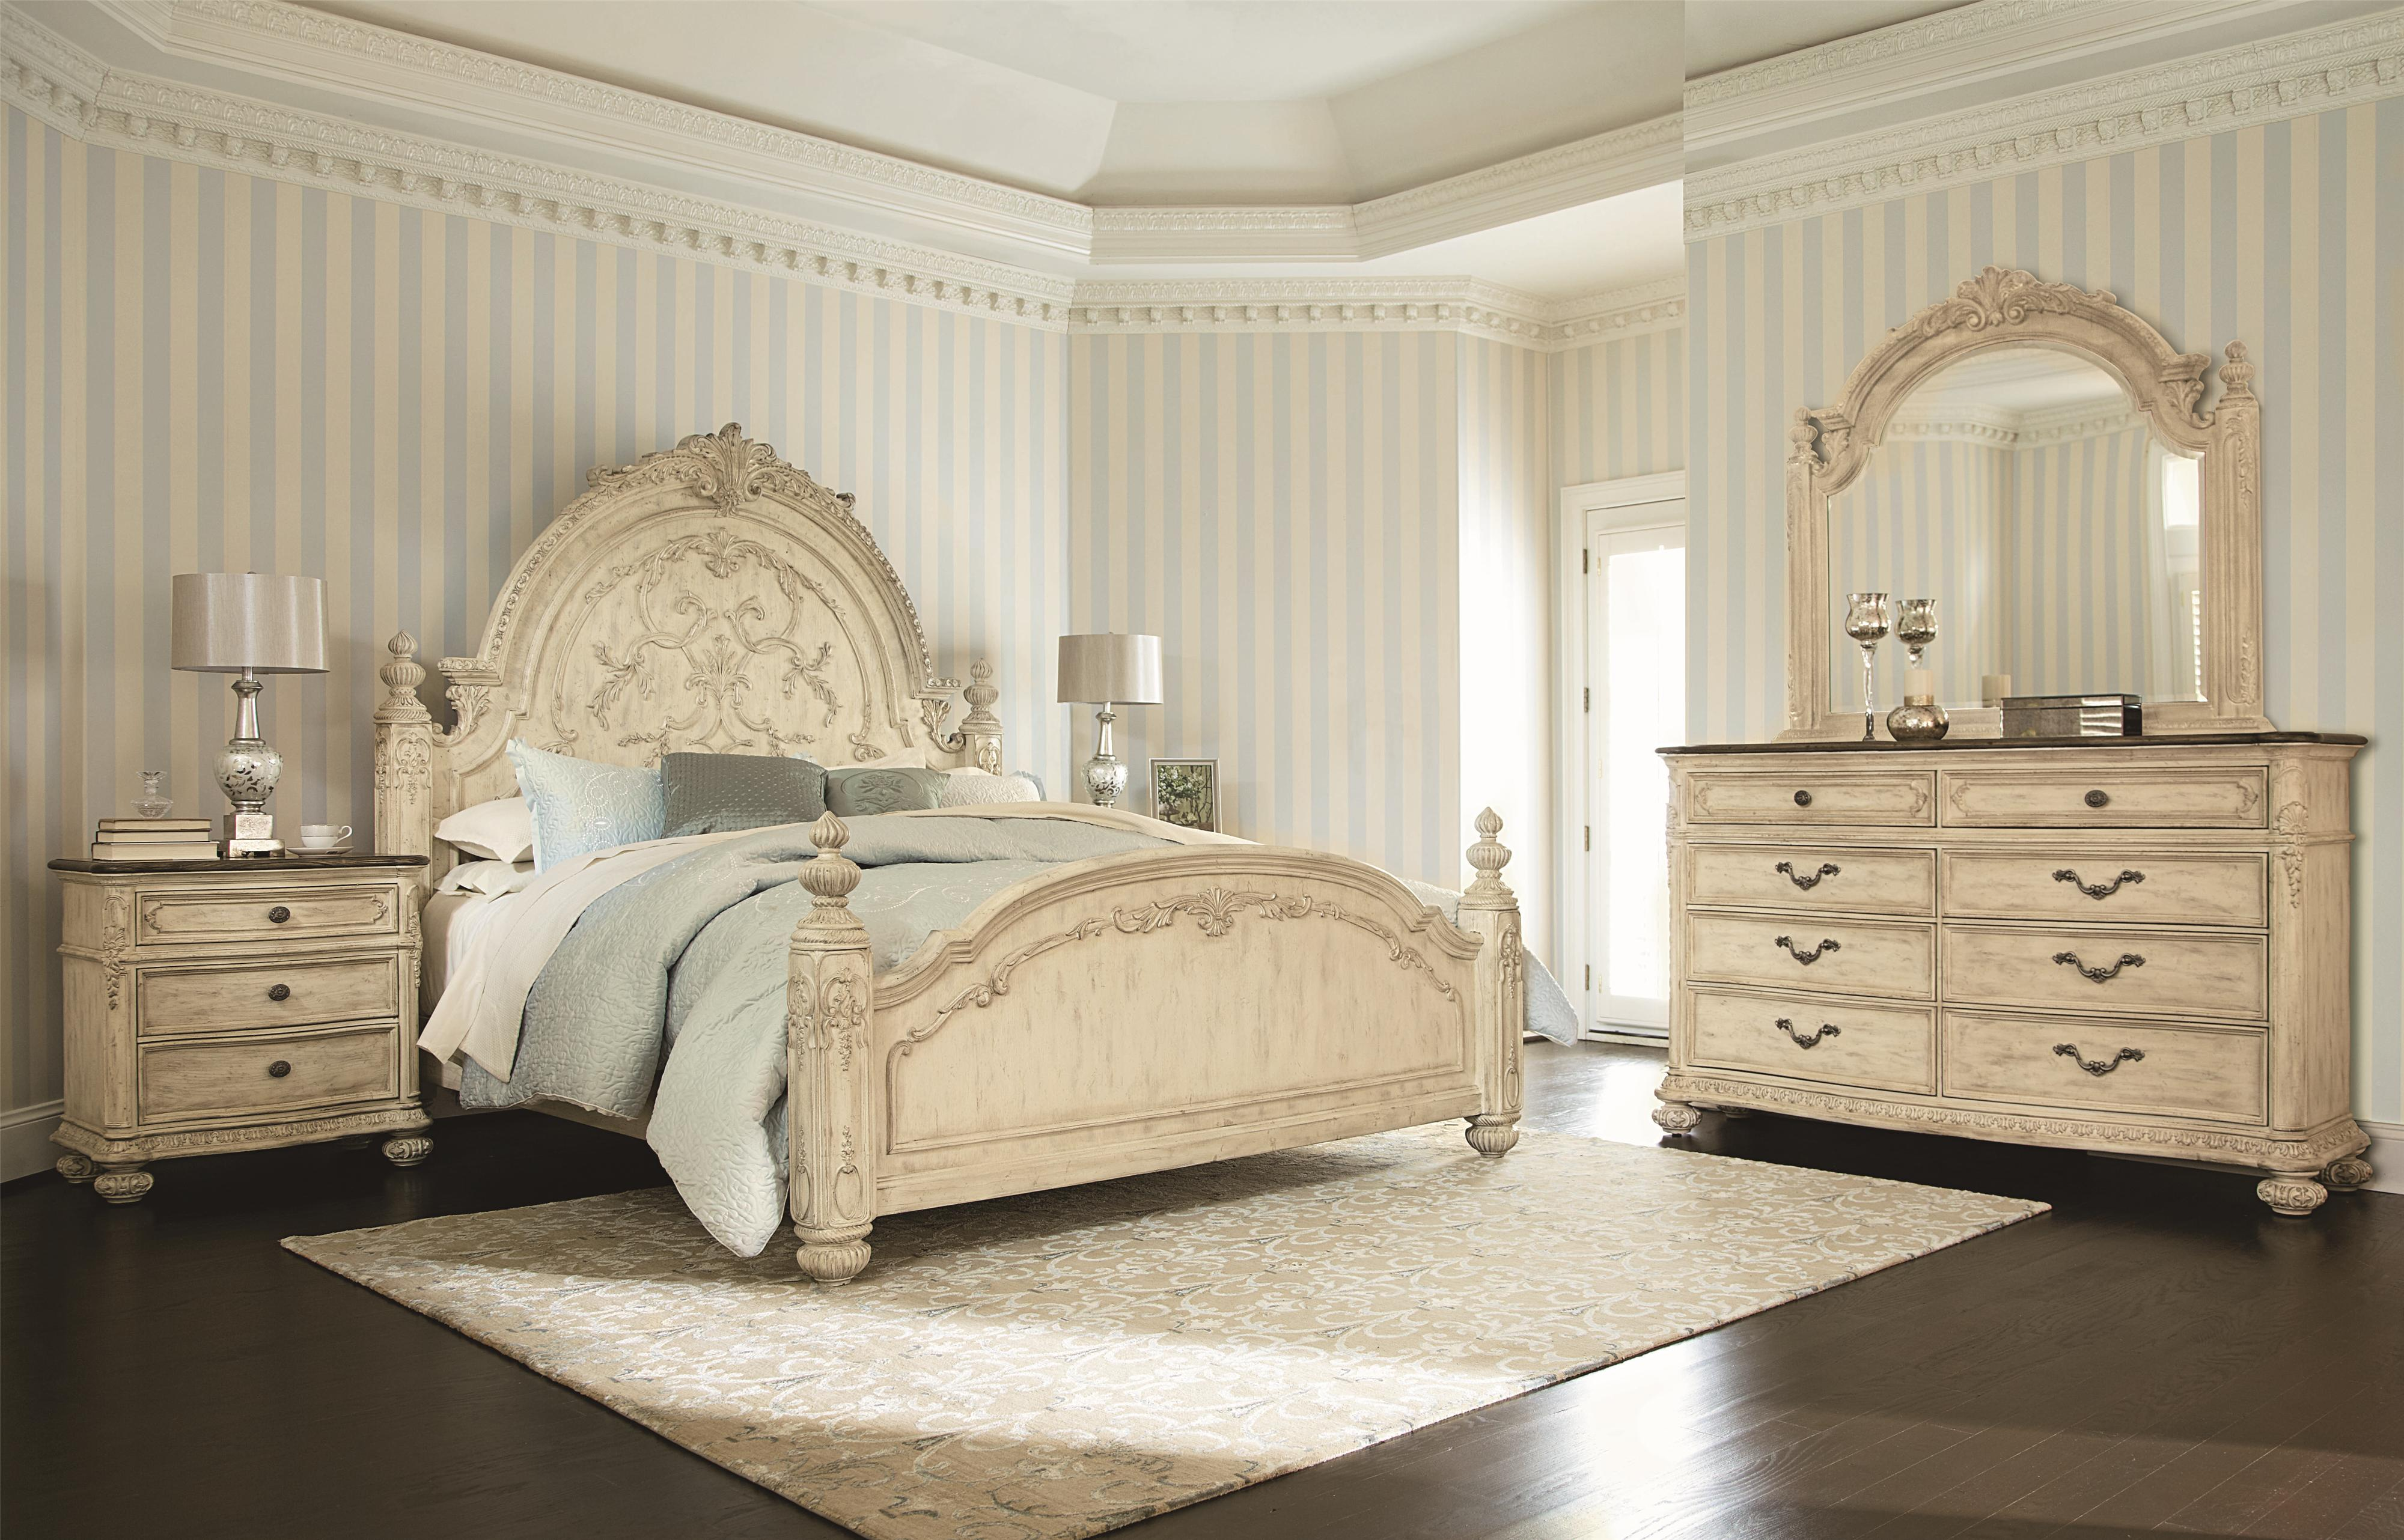 American Drew Jessica McClintock Home The Boutique Collection 7